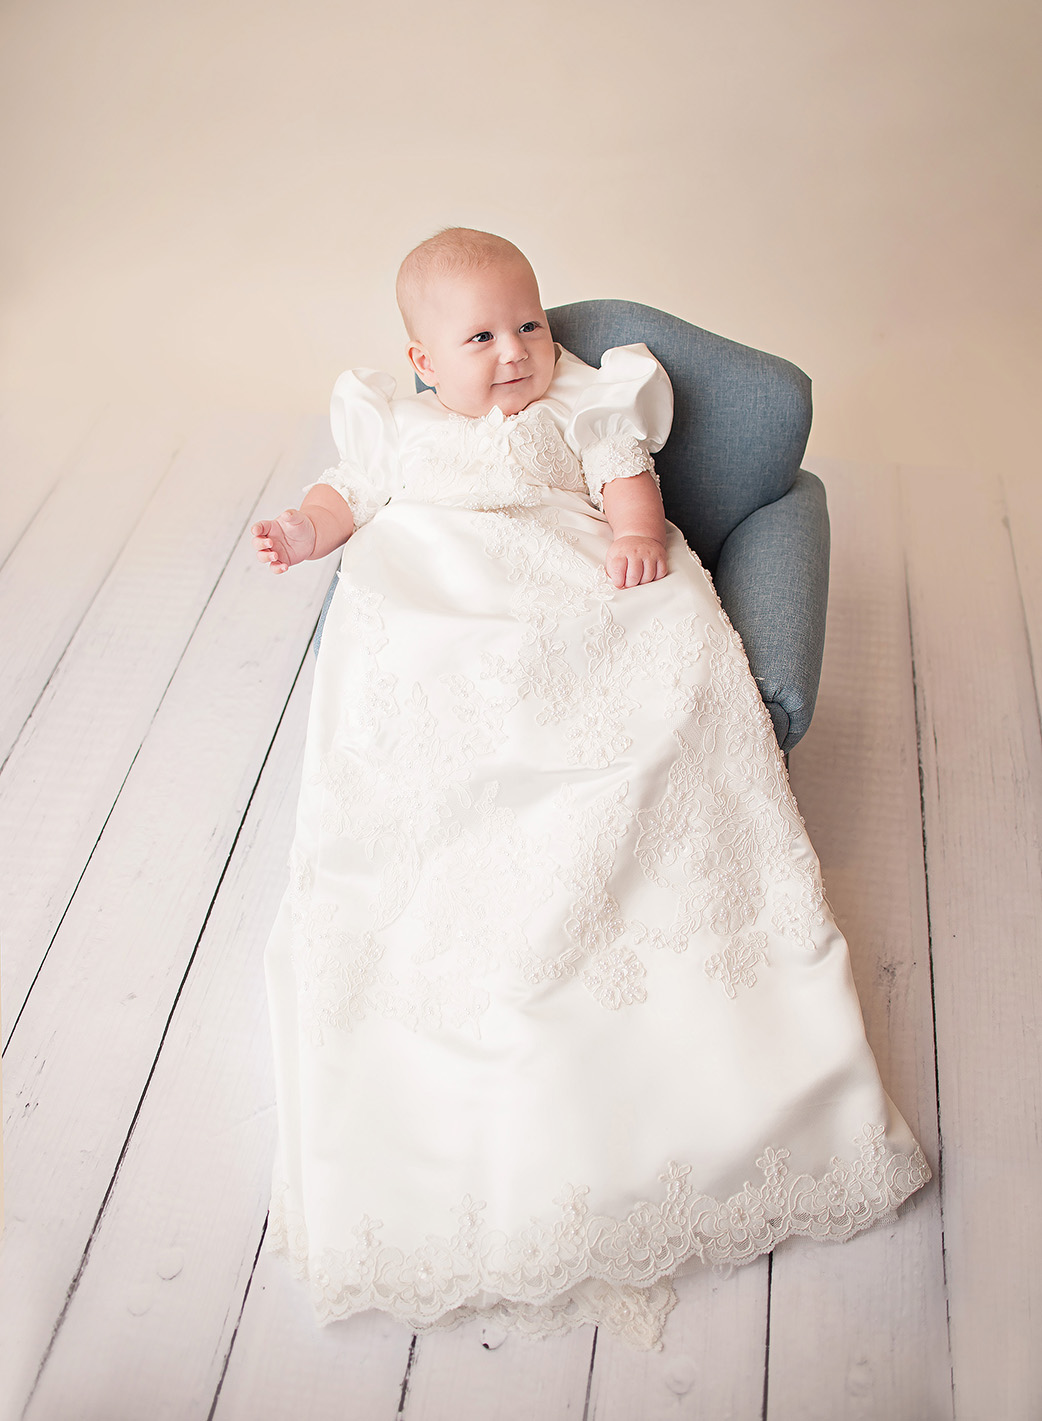 baby boy in baptism gown